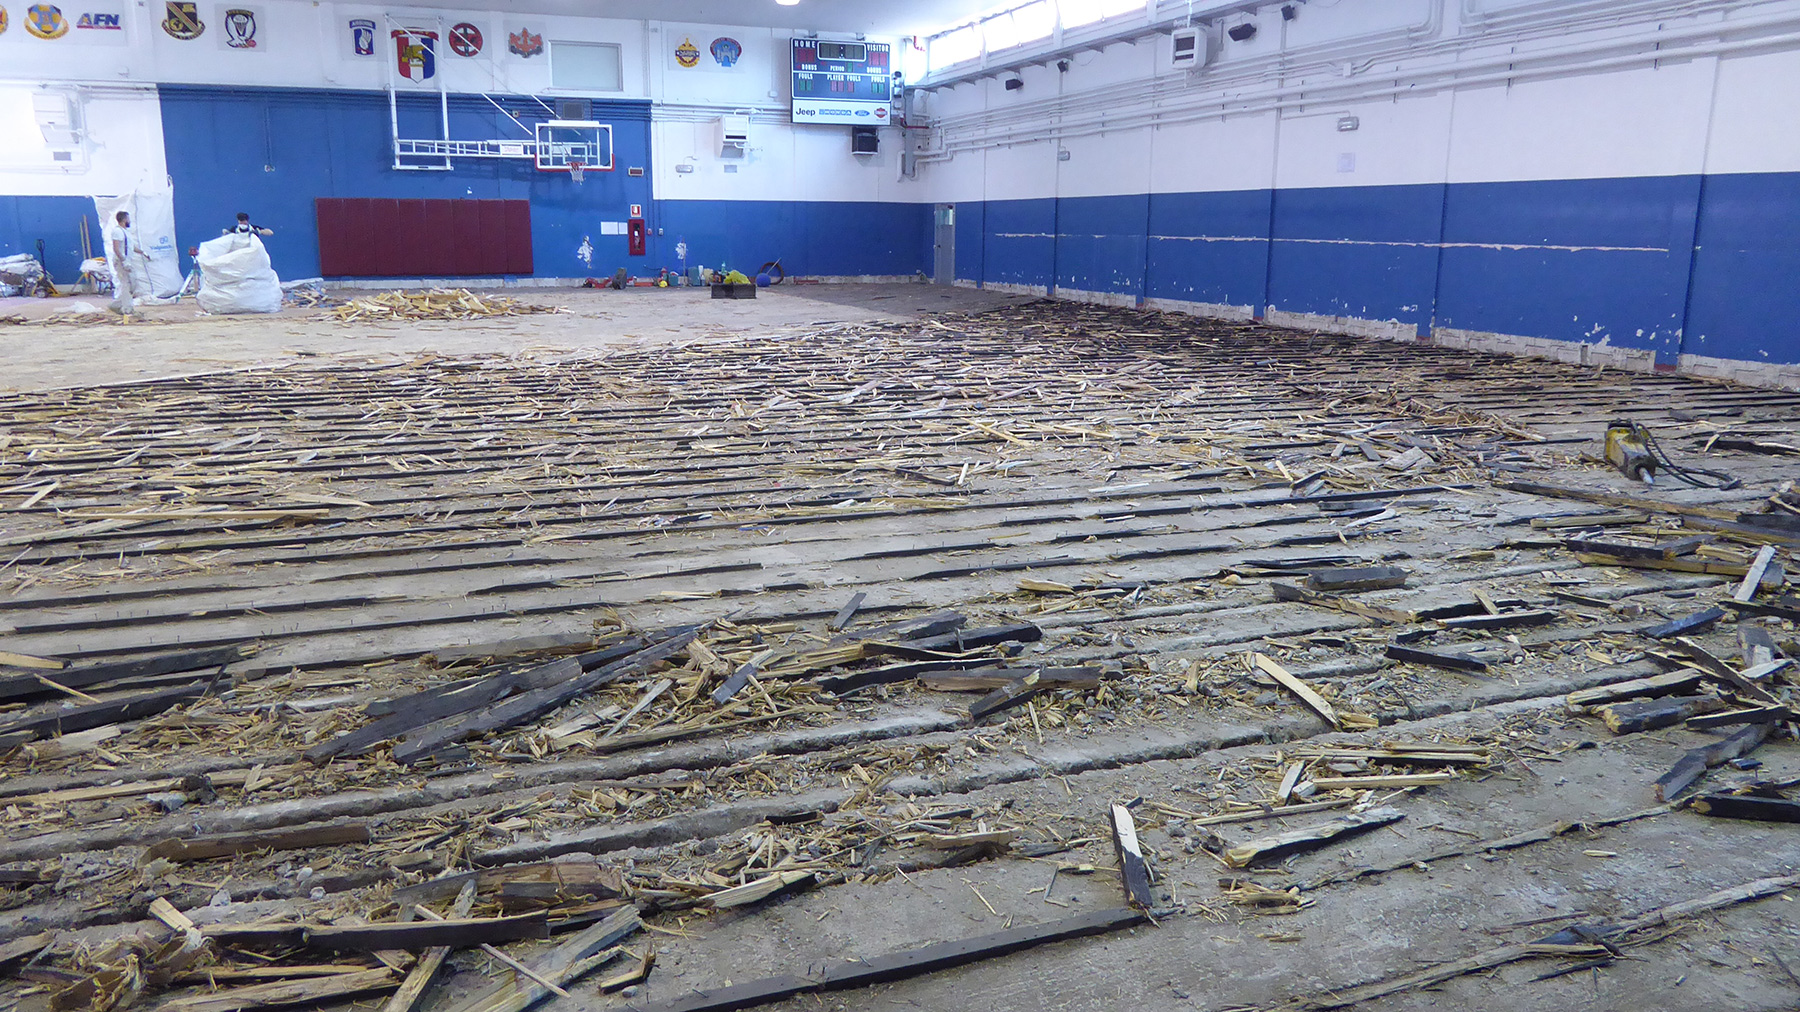 The old and worn flooring